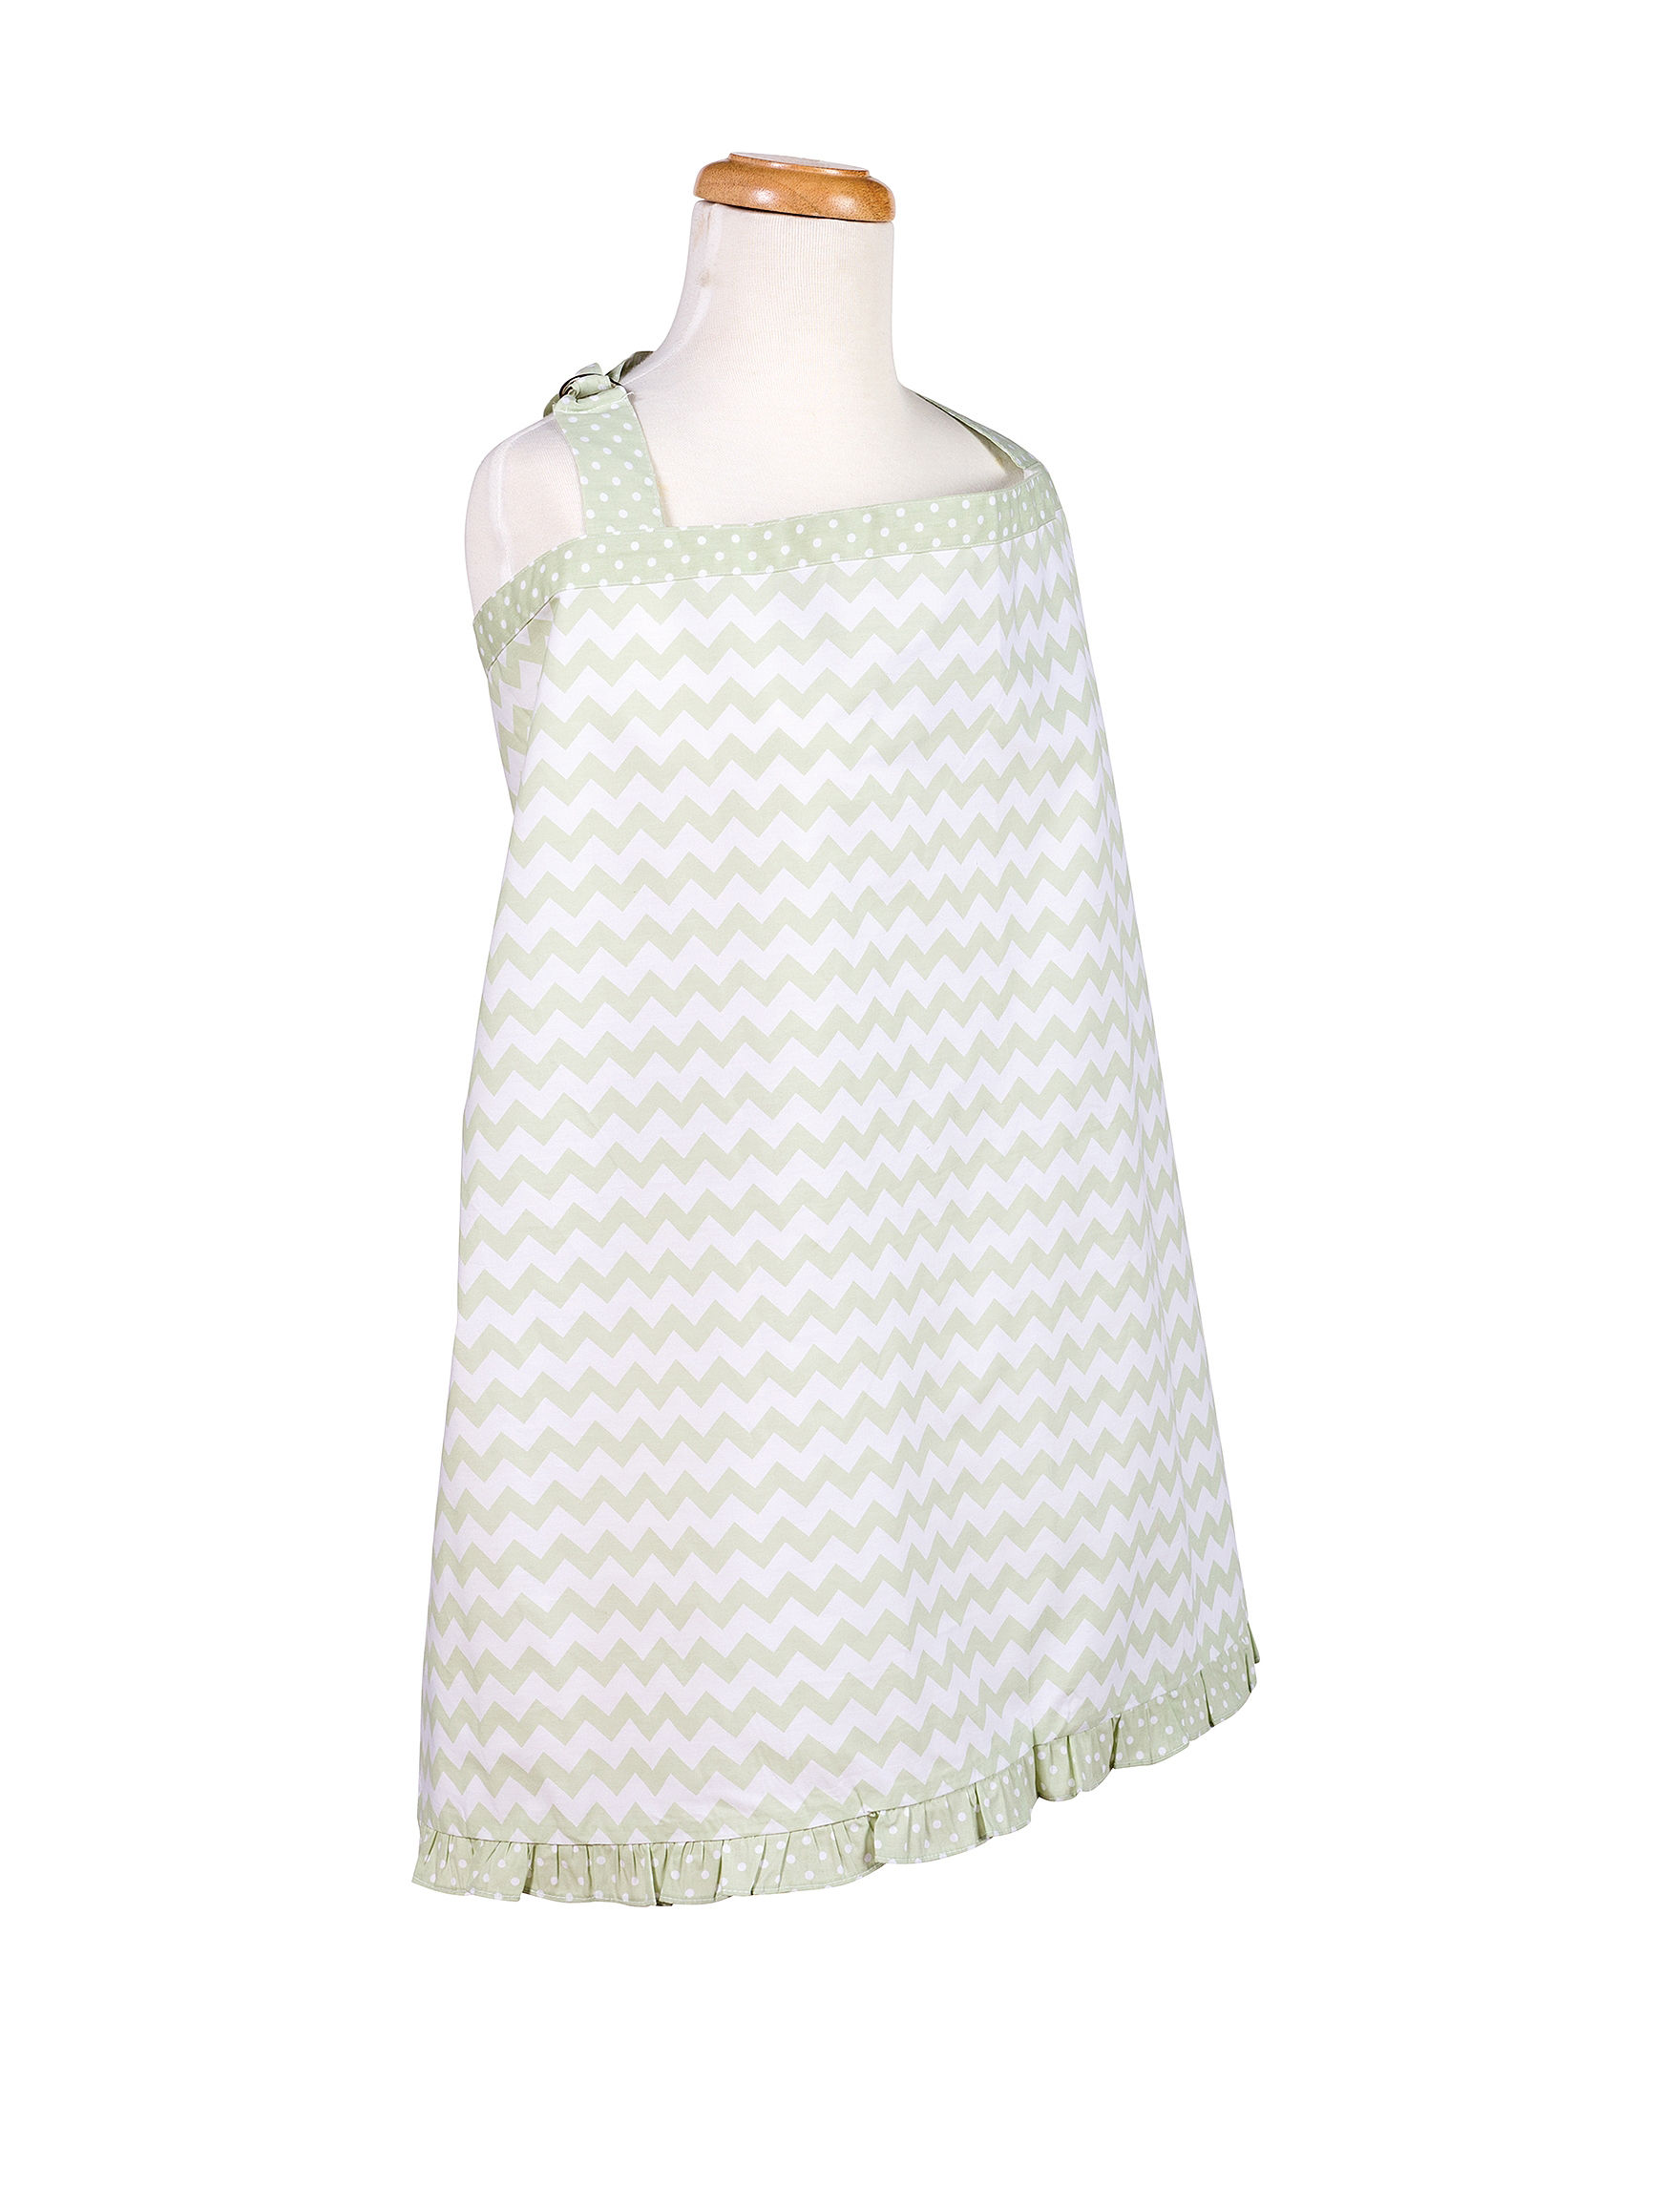 Trend Lab Green / White Breastfeeding